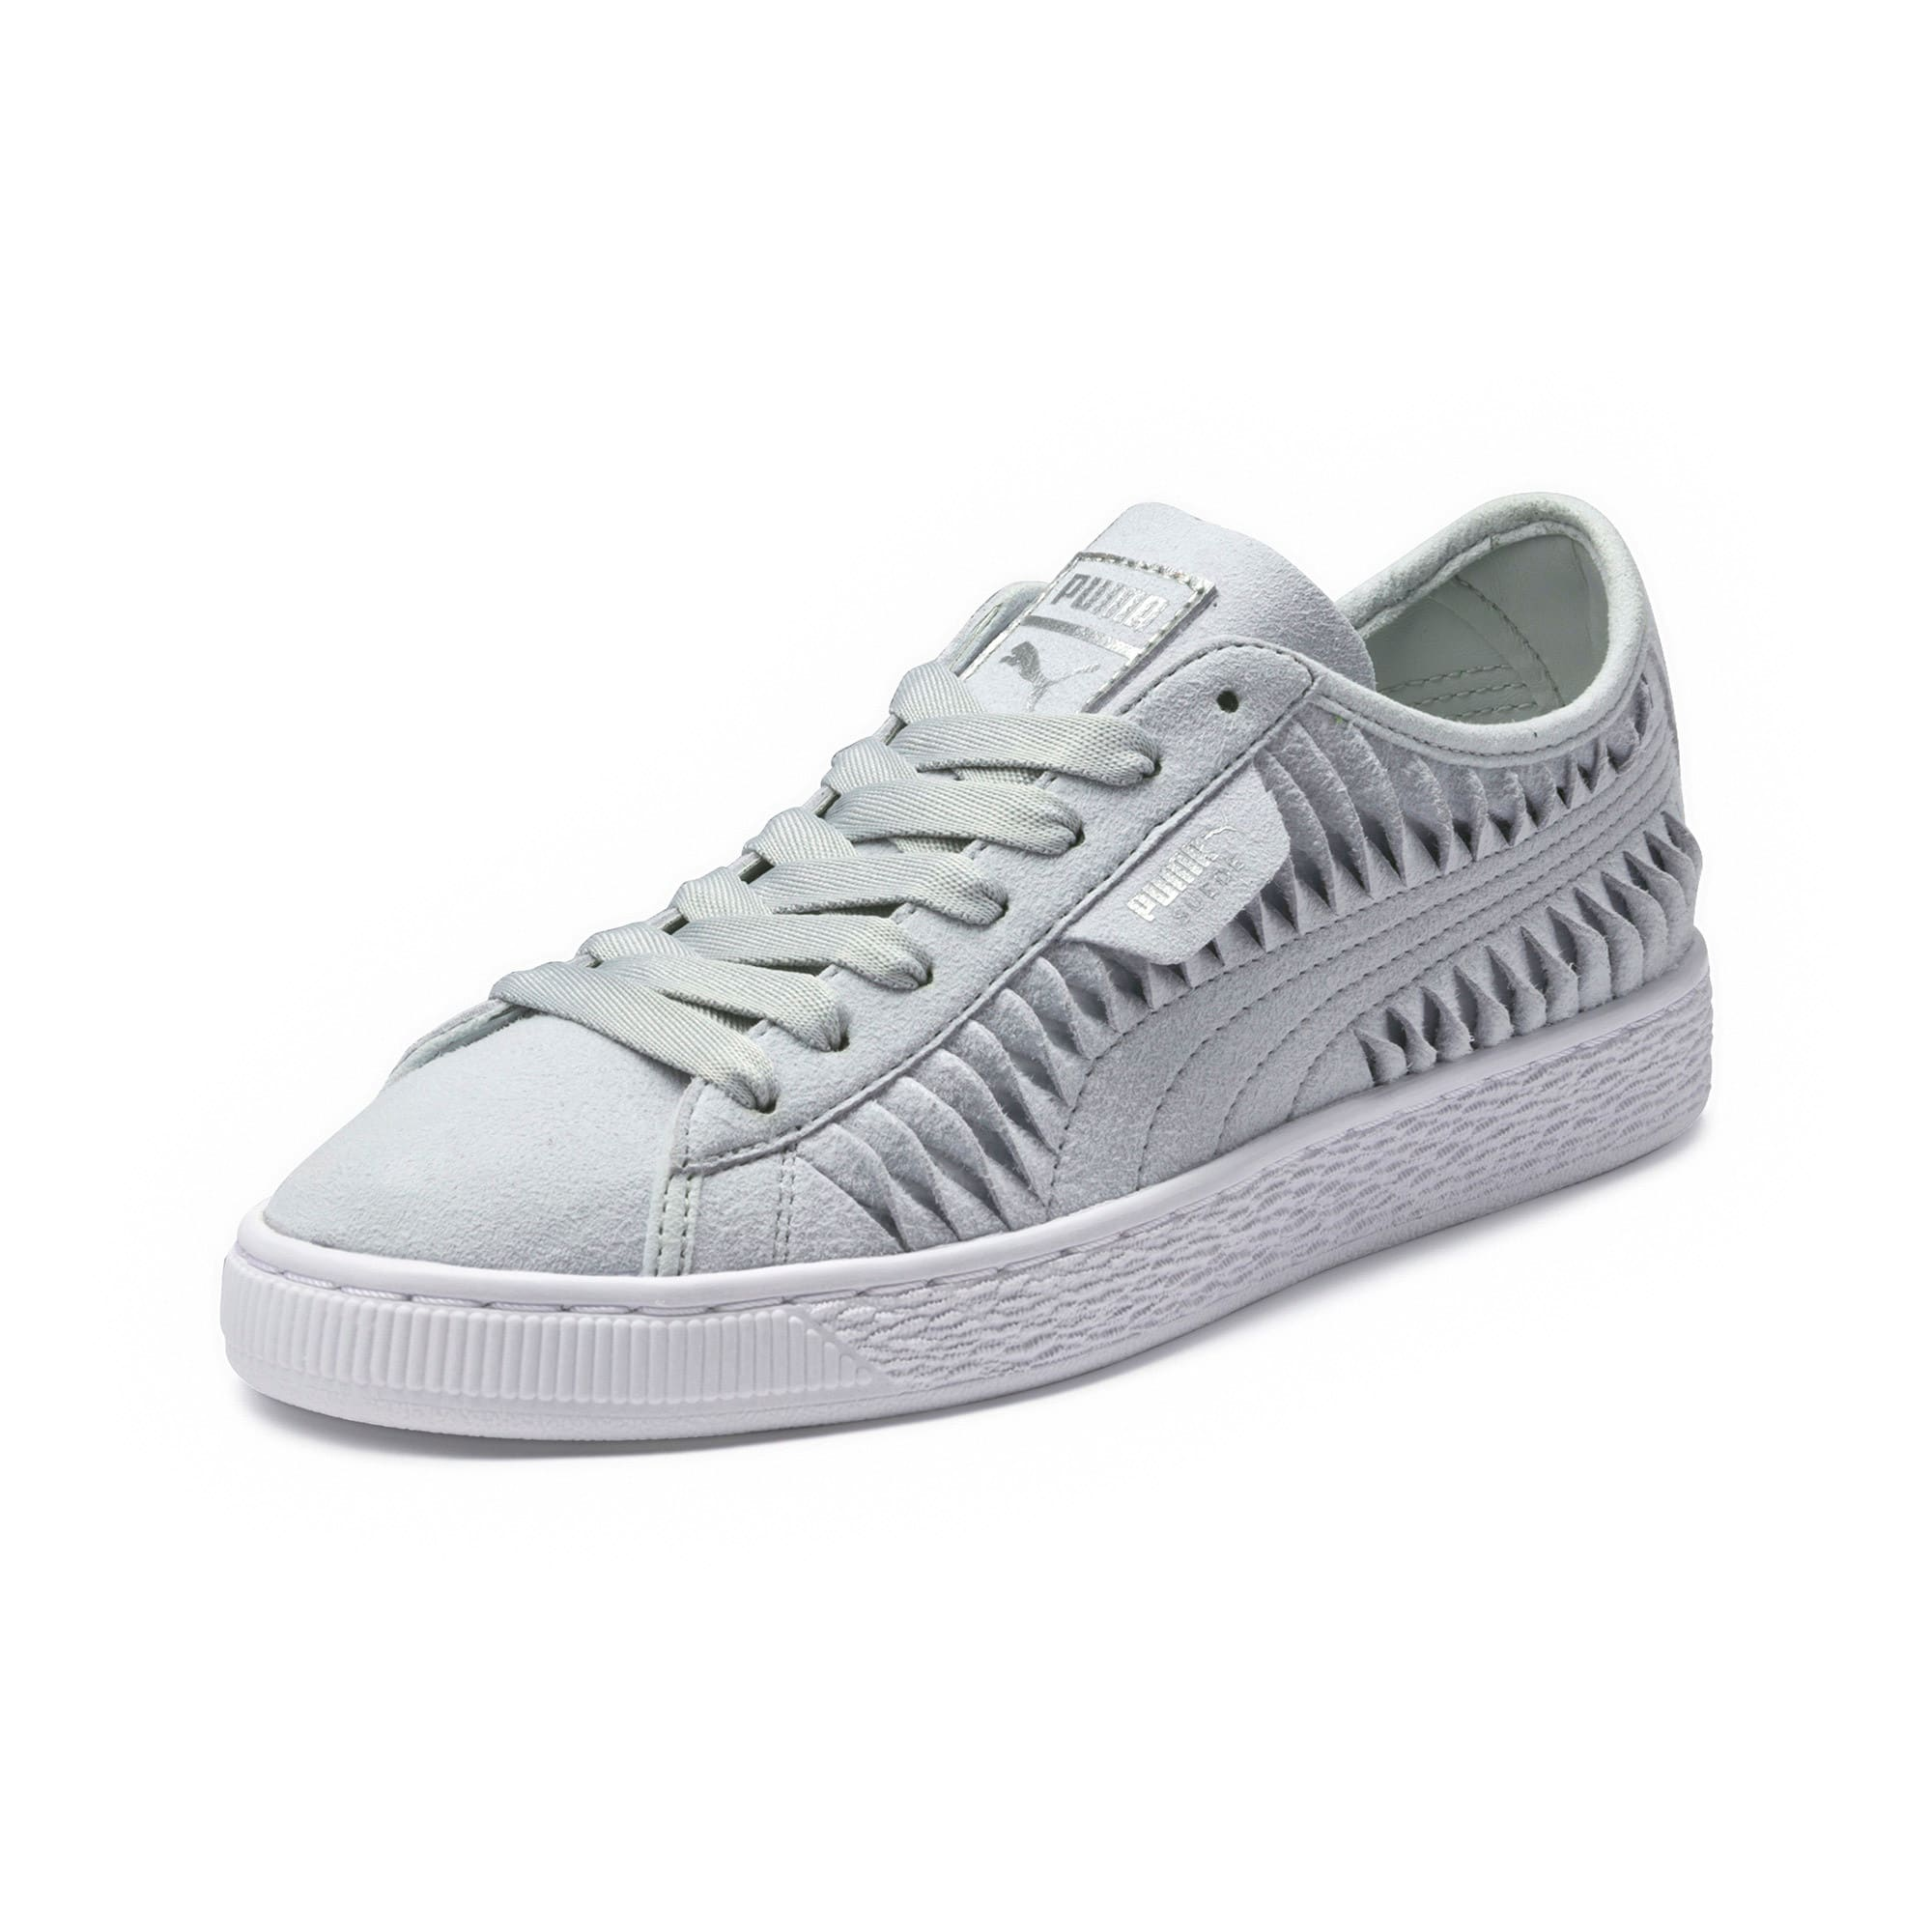 Thumbnail 1 of Suede Metallic Entwine Women's Trainers, Glacier Gray-Silver, medium-IND